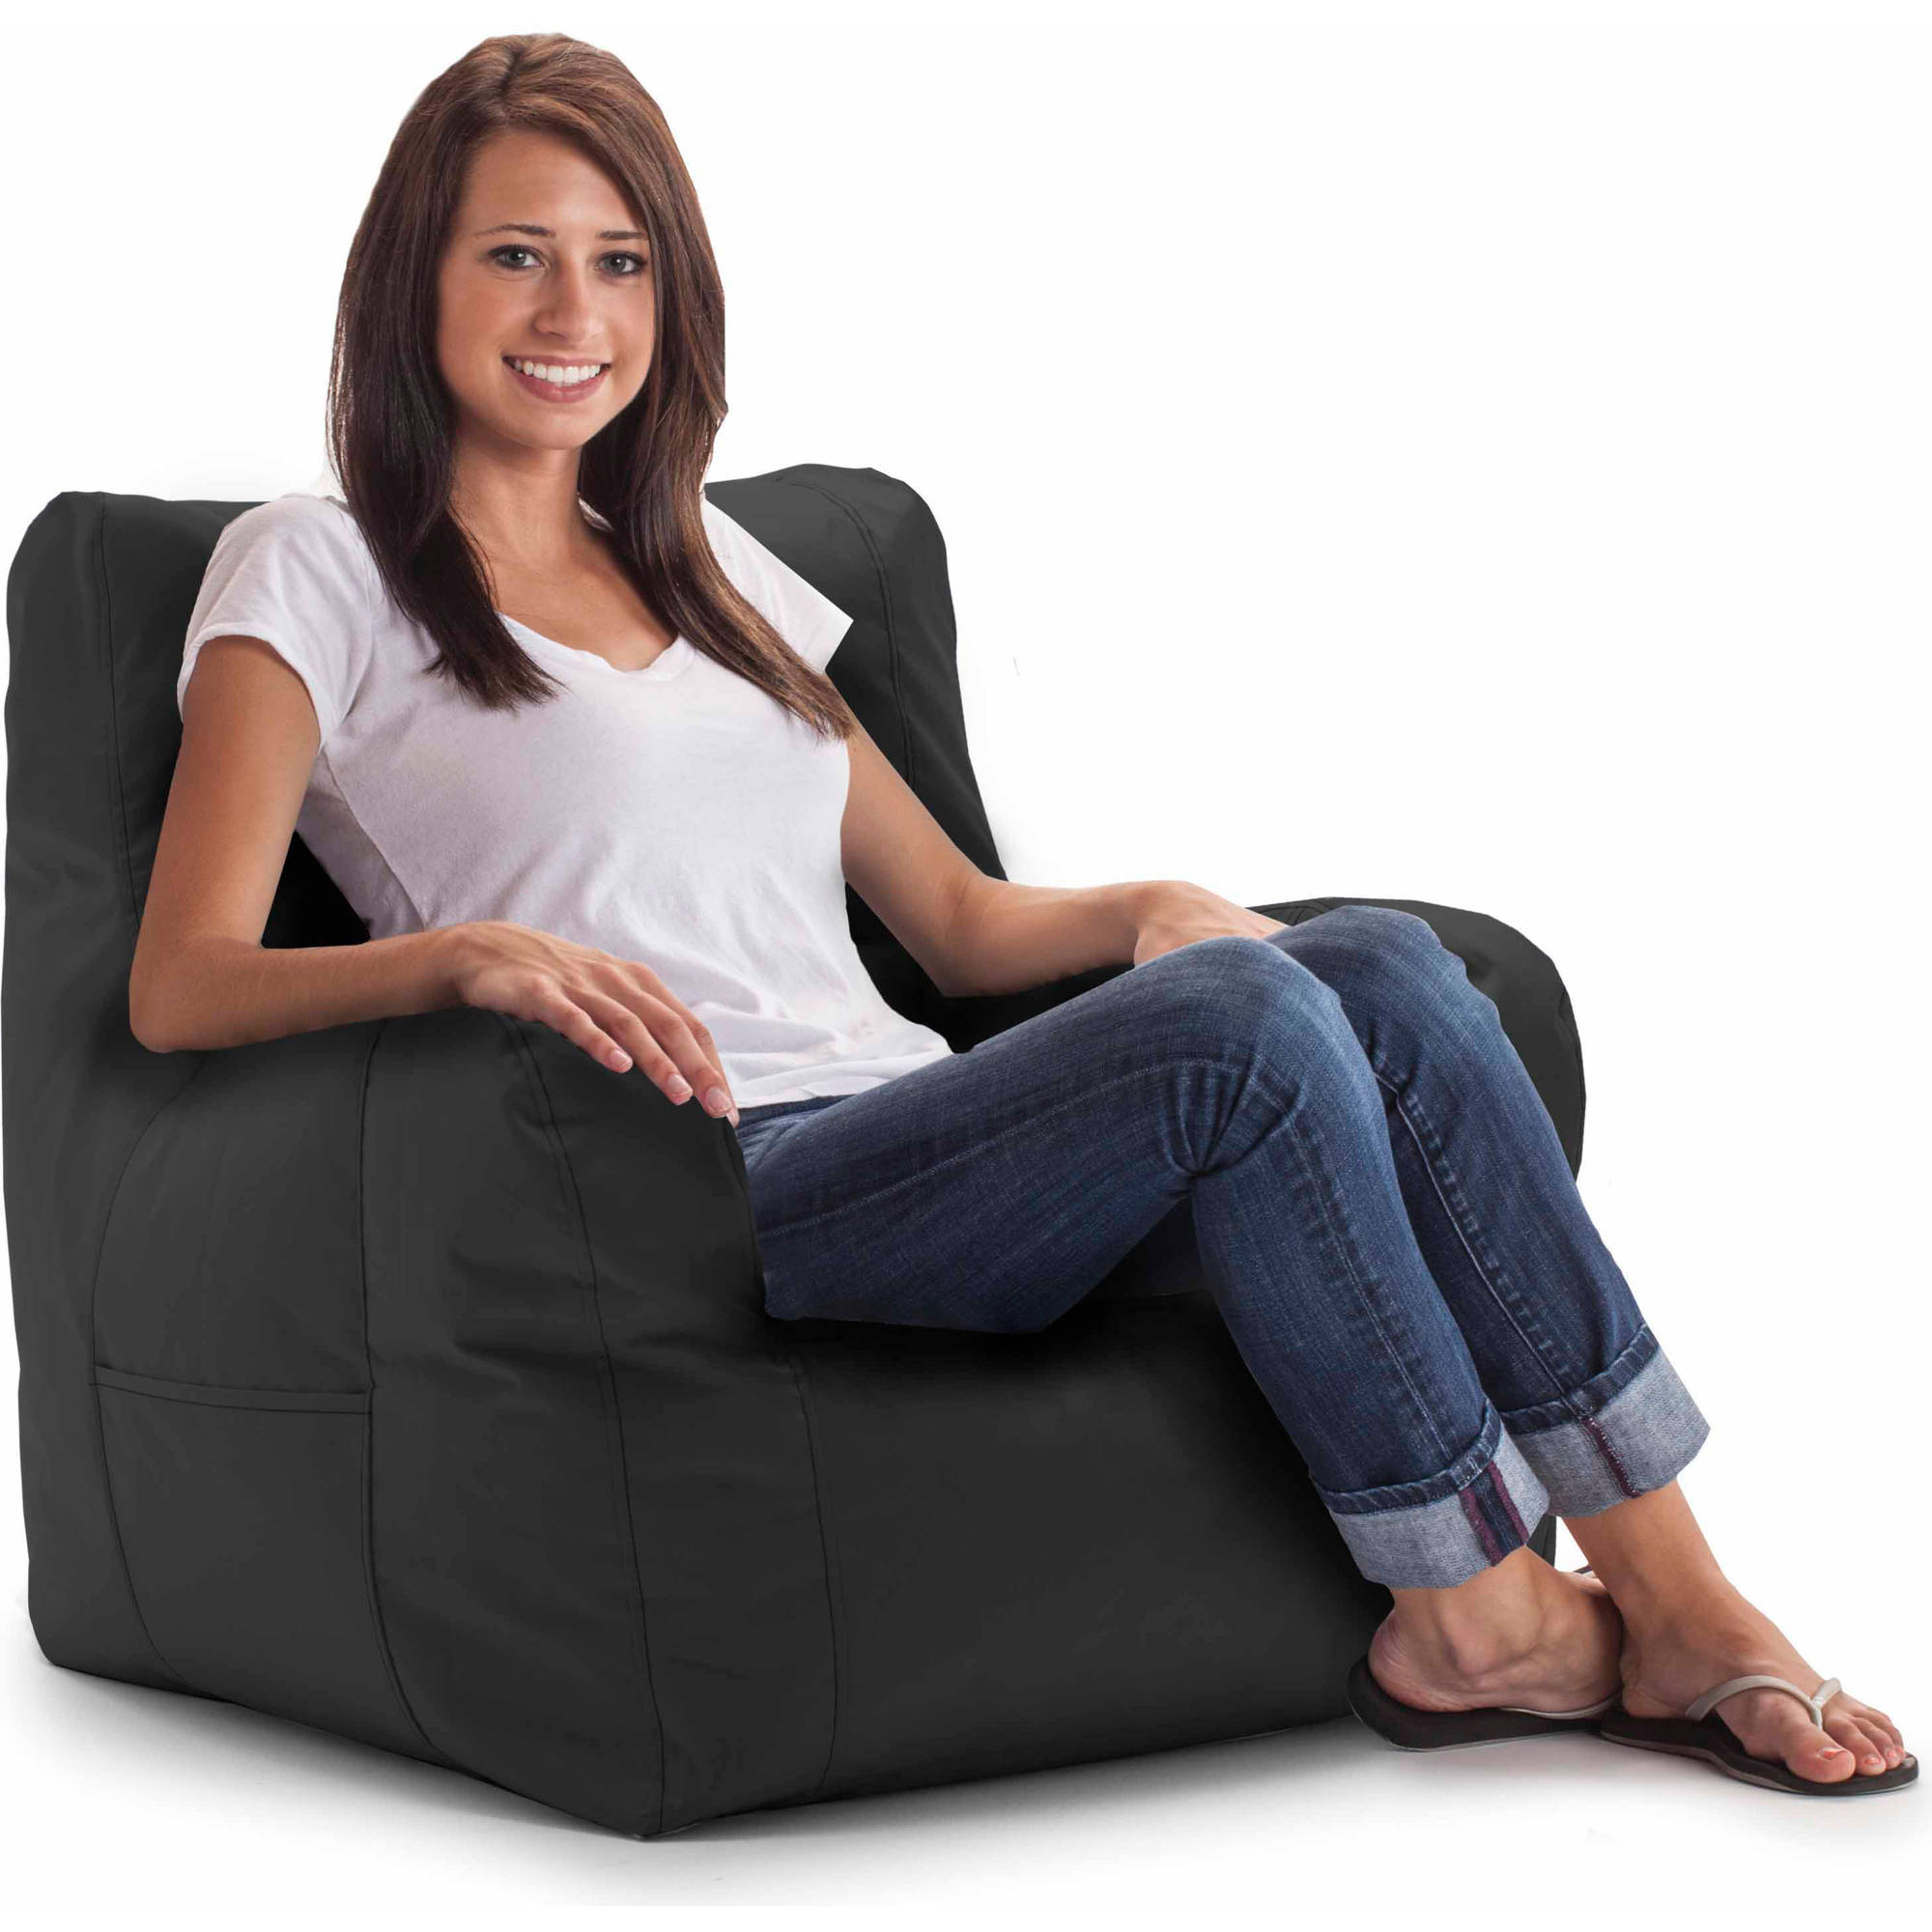 Big Joe SmartMax Duo Bean Bag Chair, Multiple Colors   Walmart.com